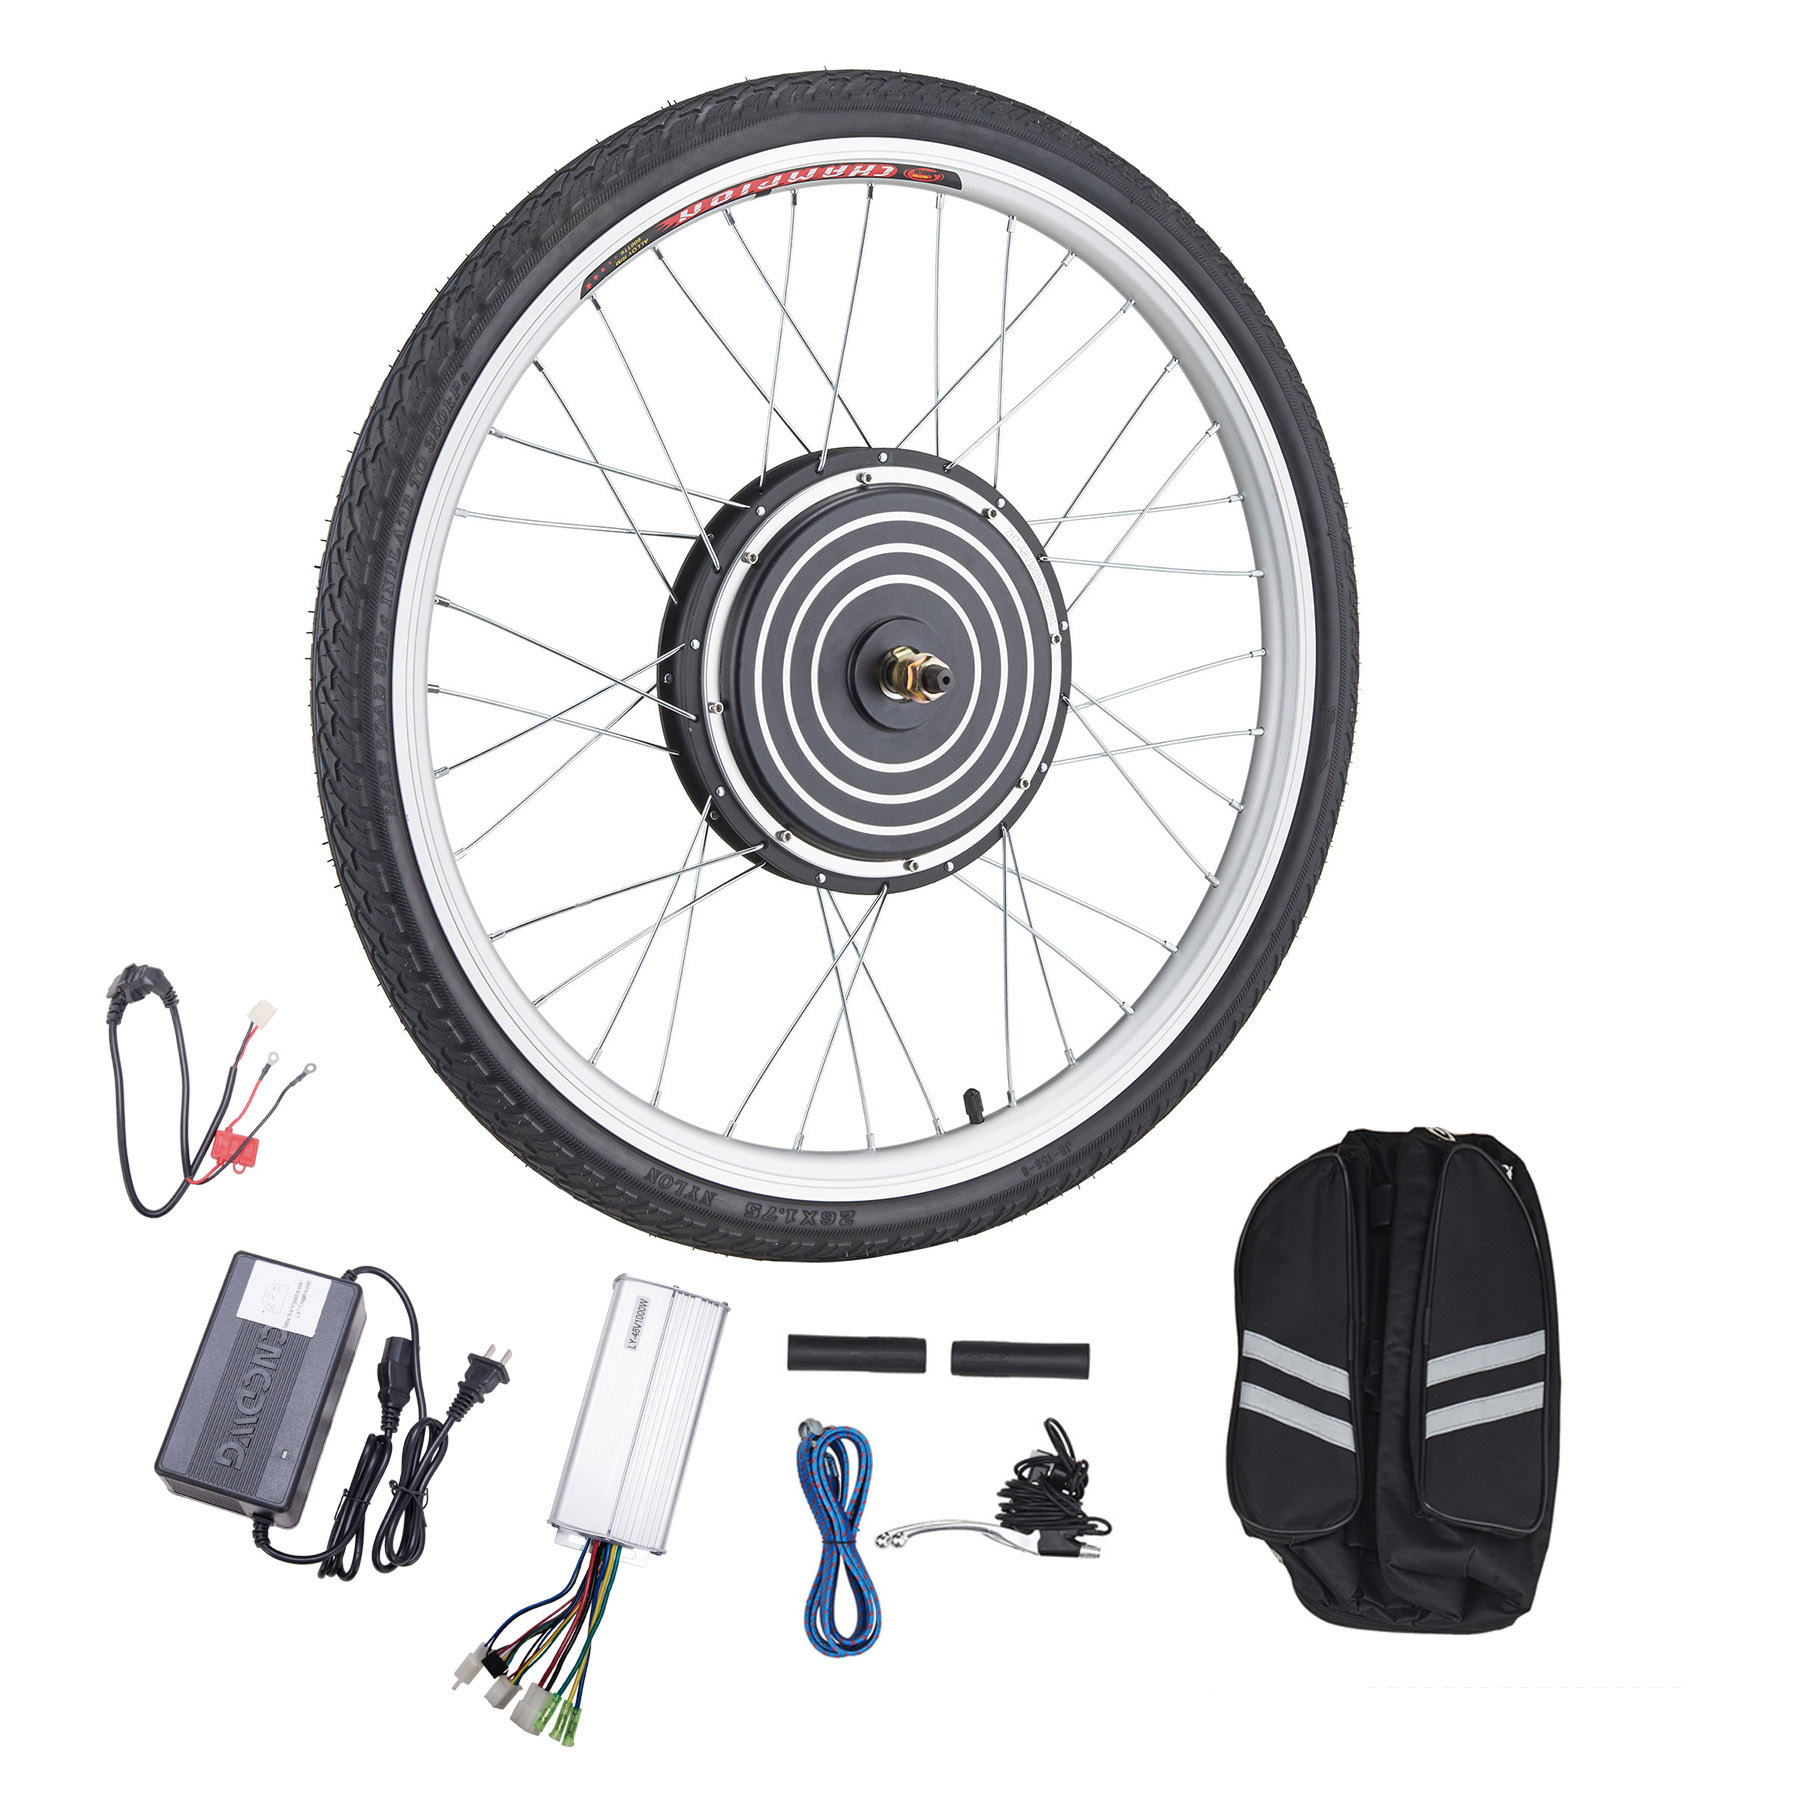 "26""x1.8"" Front or Rear Wheel Ebike Hub Motor Conversion Kit with Dual Mode Controller, 36V 500W or 48V 1000W"